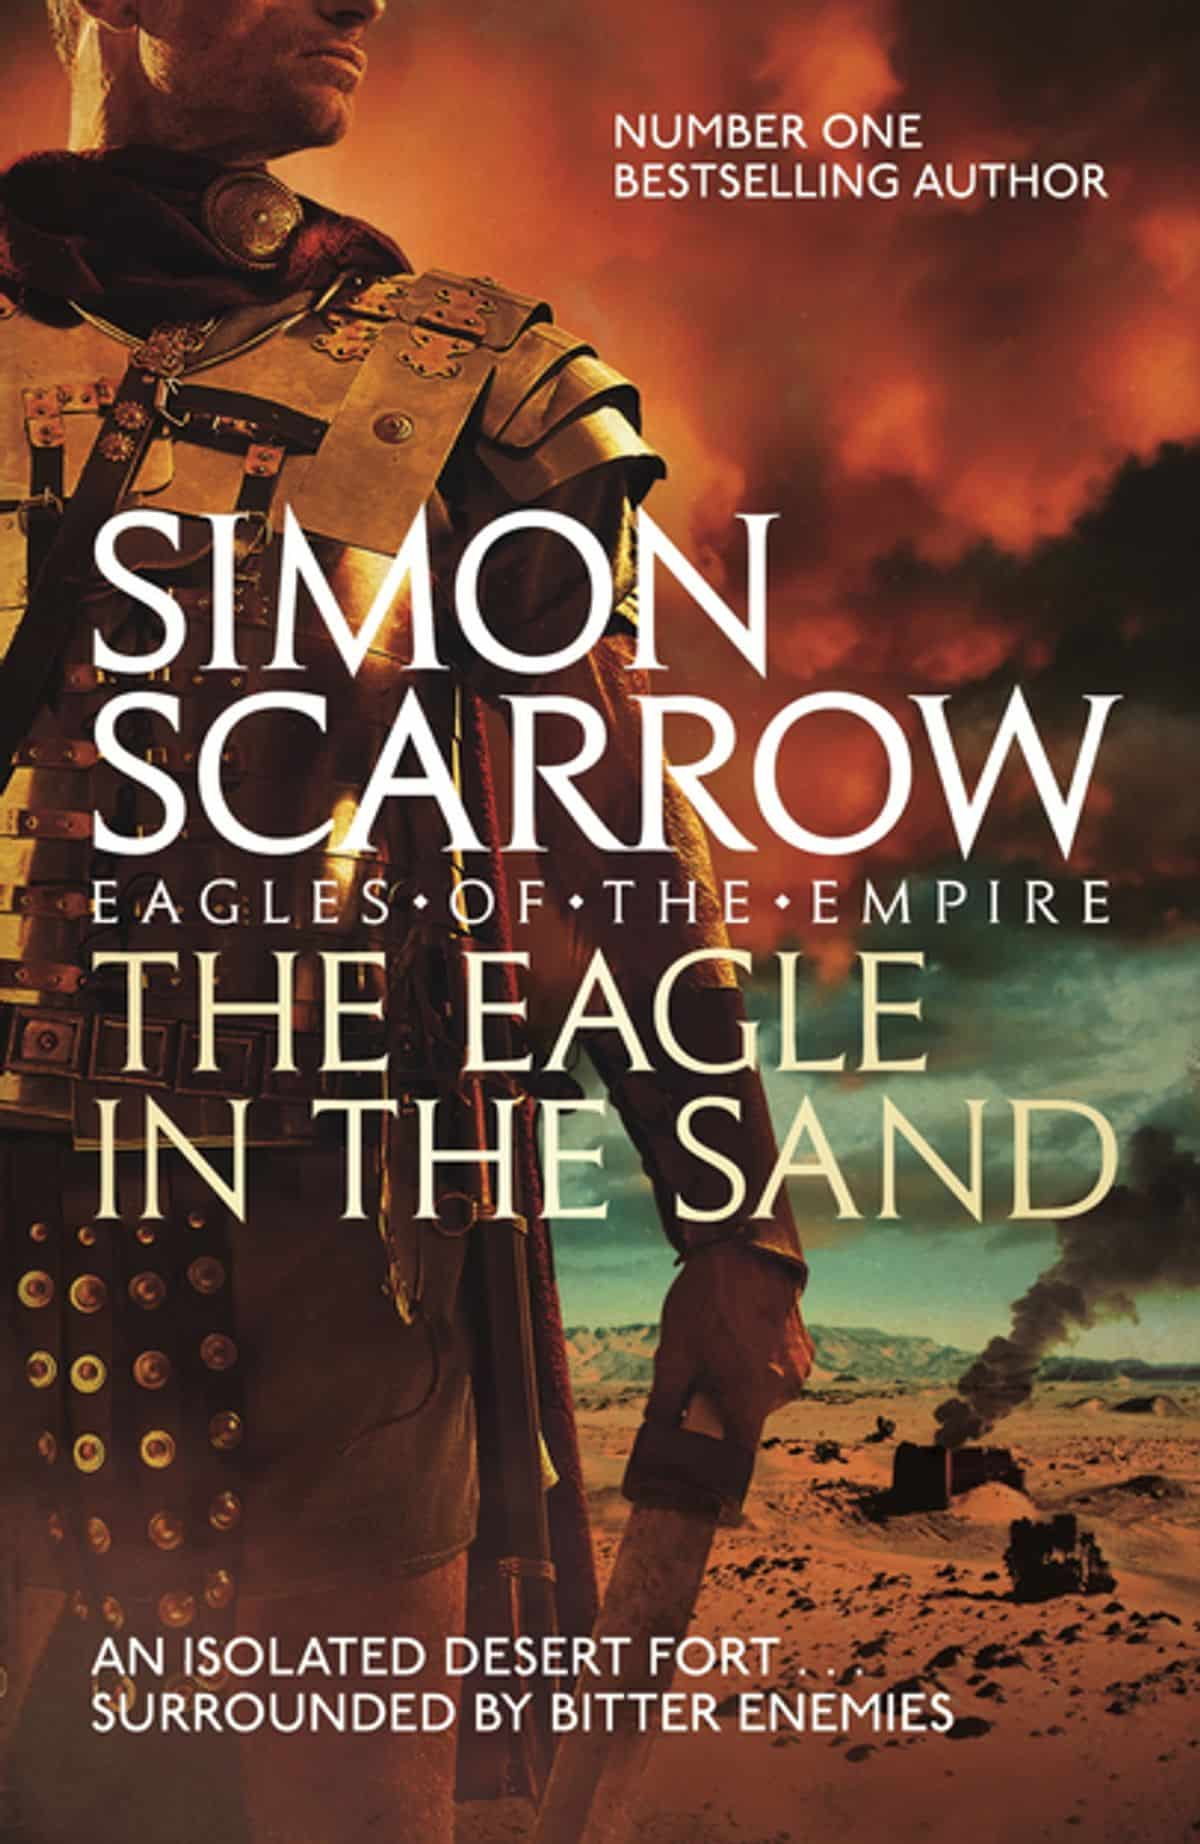 The Eagle in the Sand Audiobook Free Download